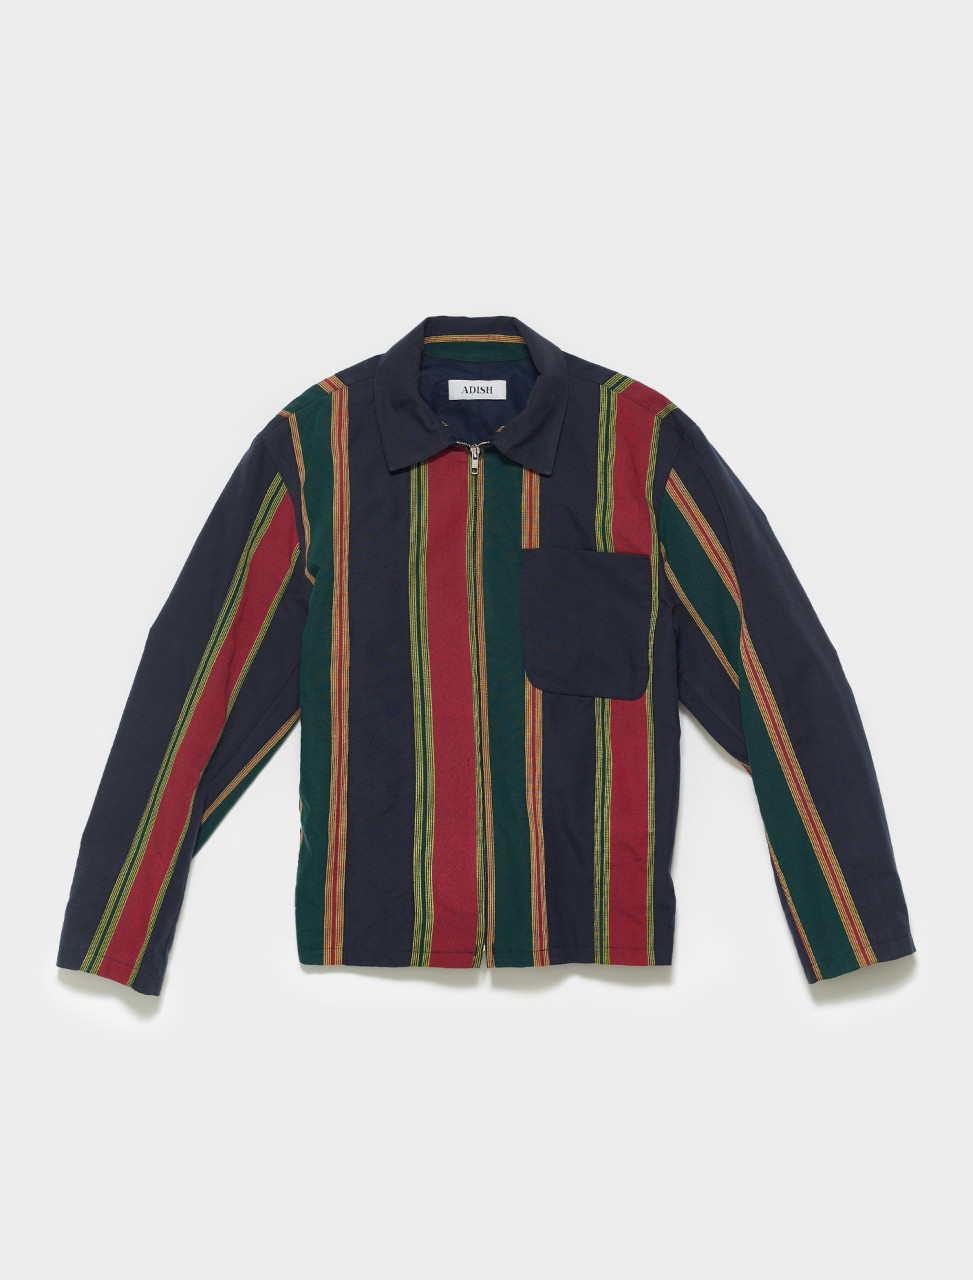 SS21-MSZJN001 ADISH MAJDALAWI STRIPES ZIP JACKET NAVY